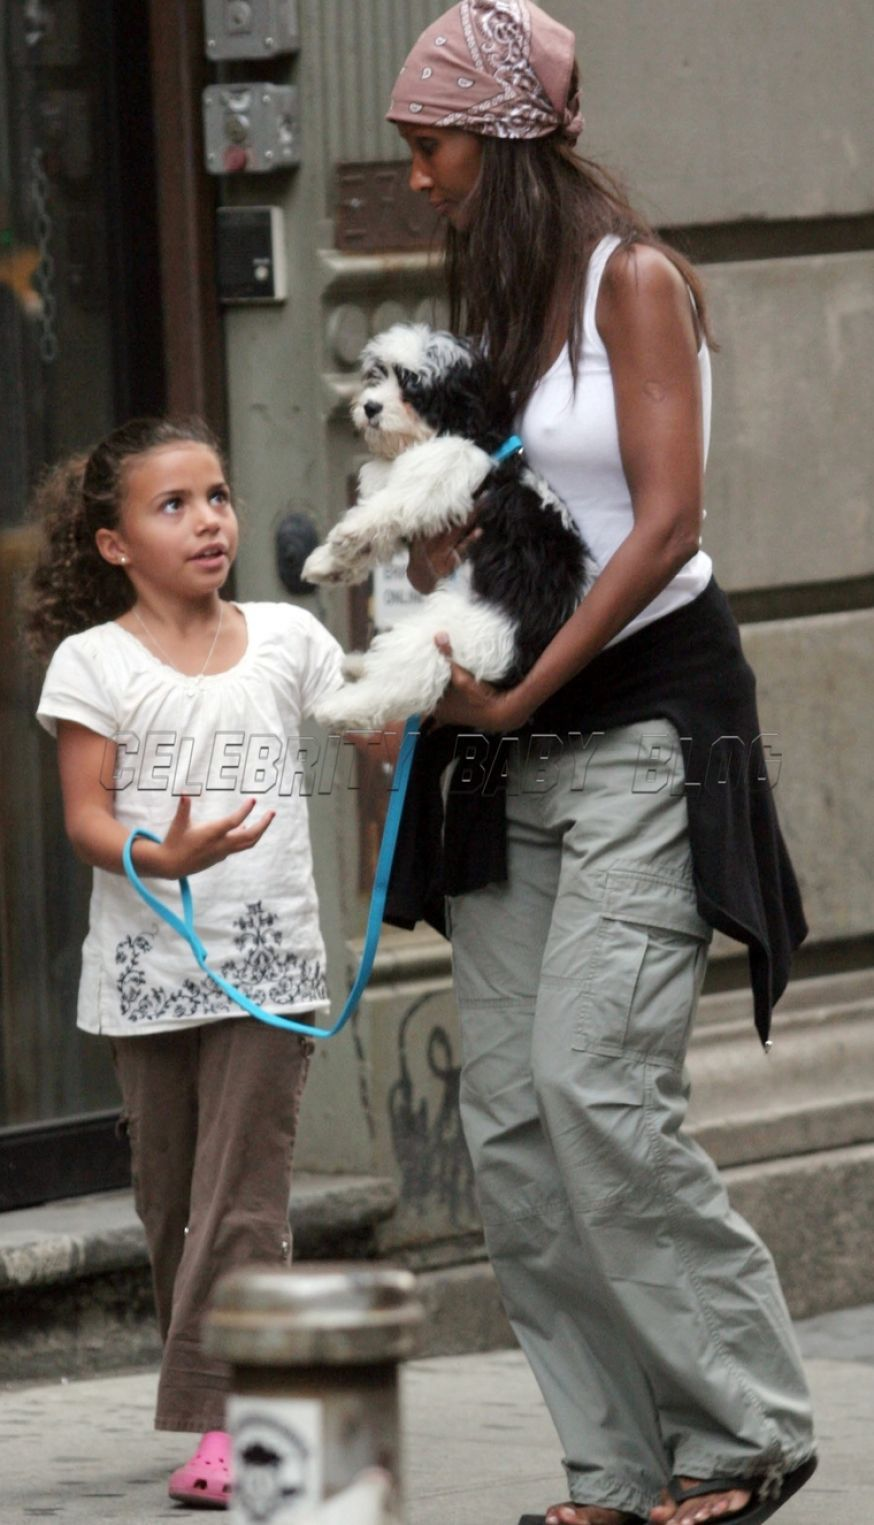 David Bowie Iman Daughter Iman And David Bowie David Bowie Iman Daughter